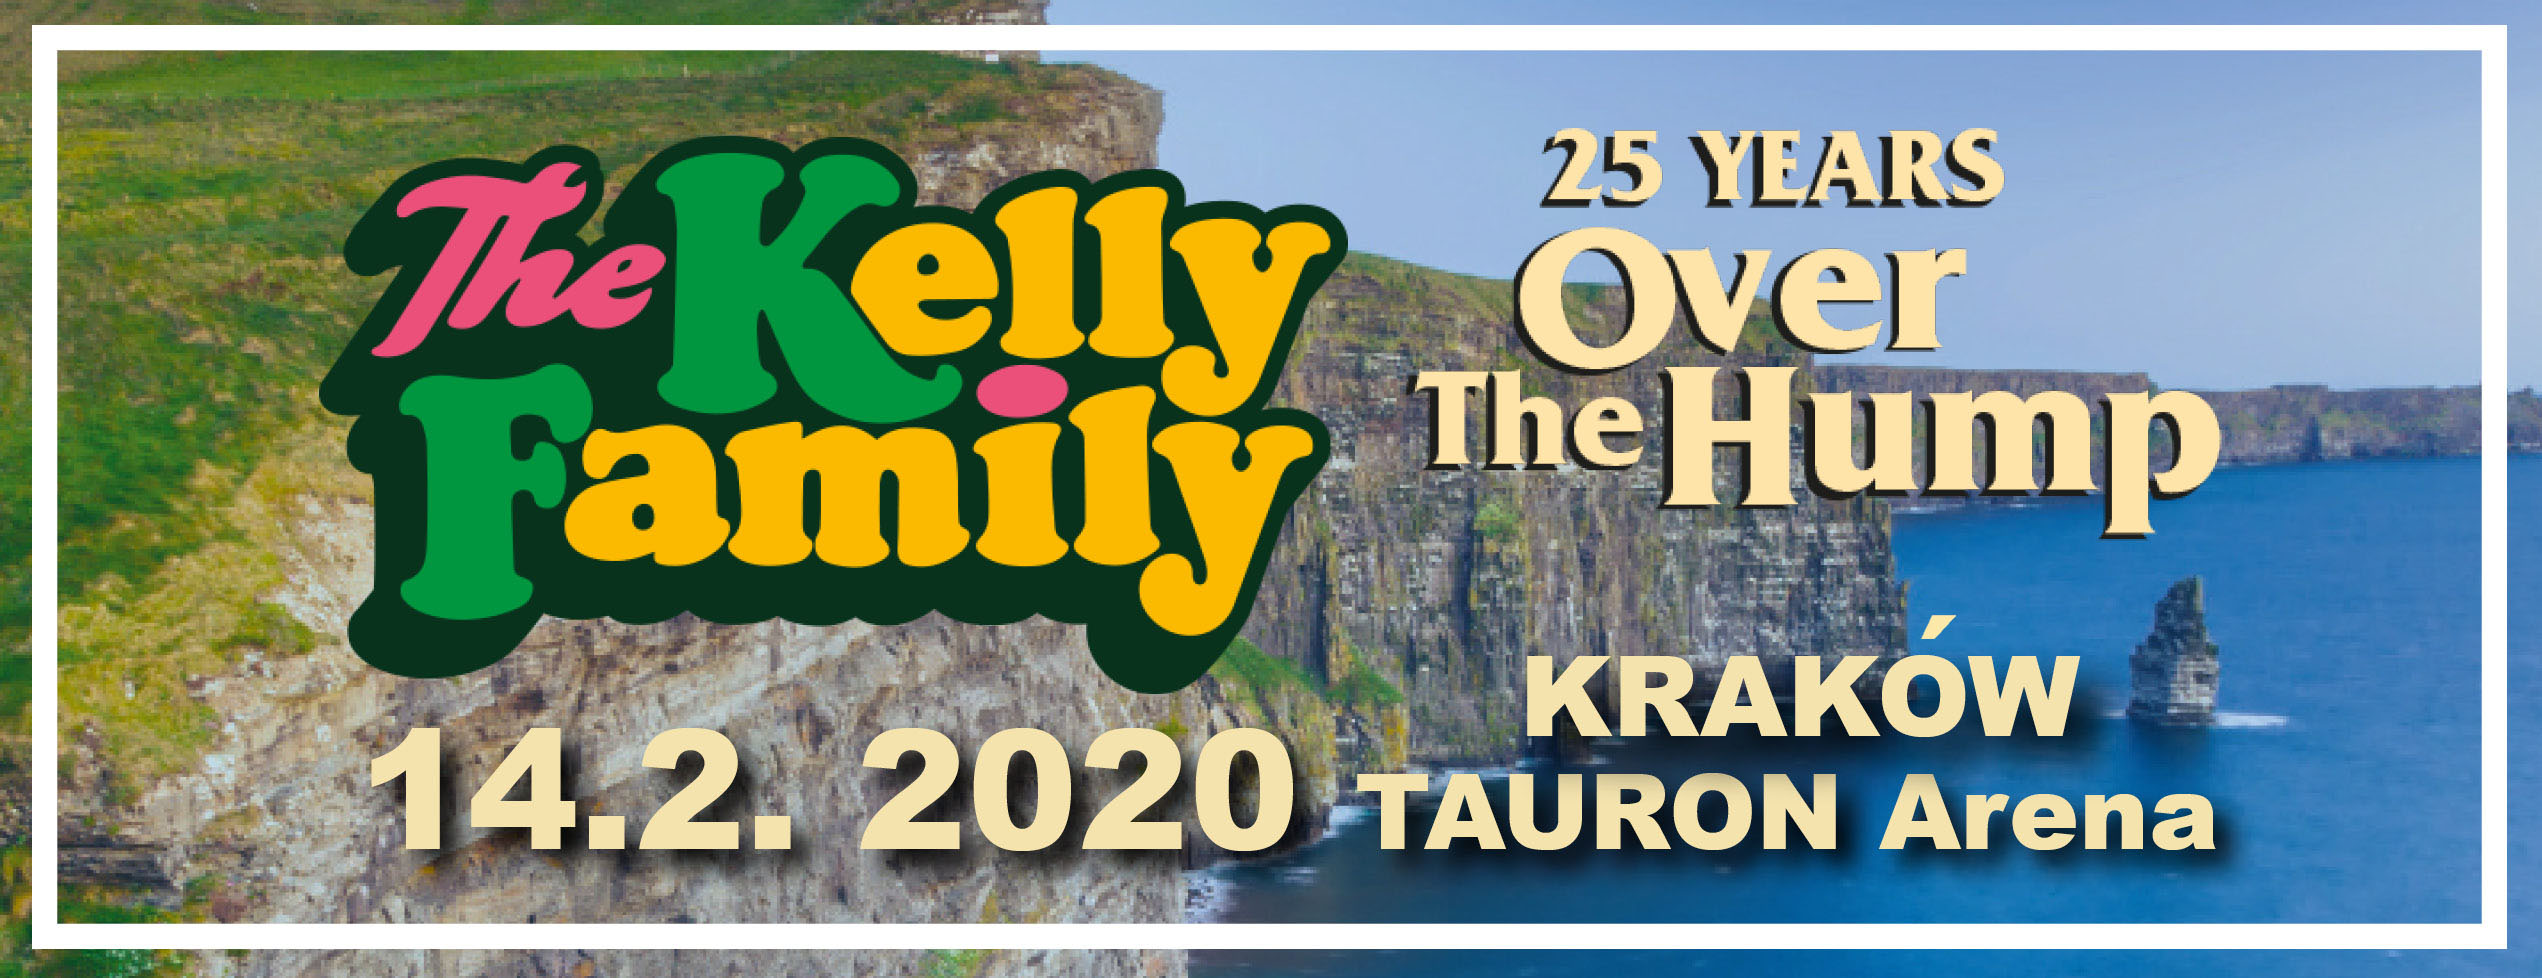 The Kelly Family 25 years Over the Hump World Tour